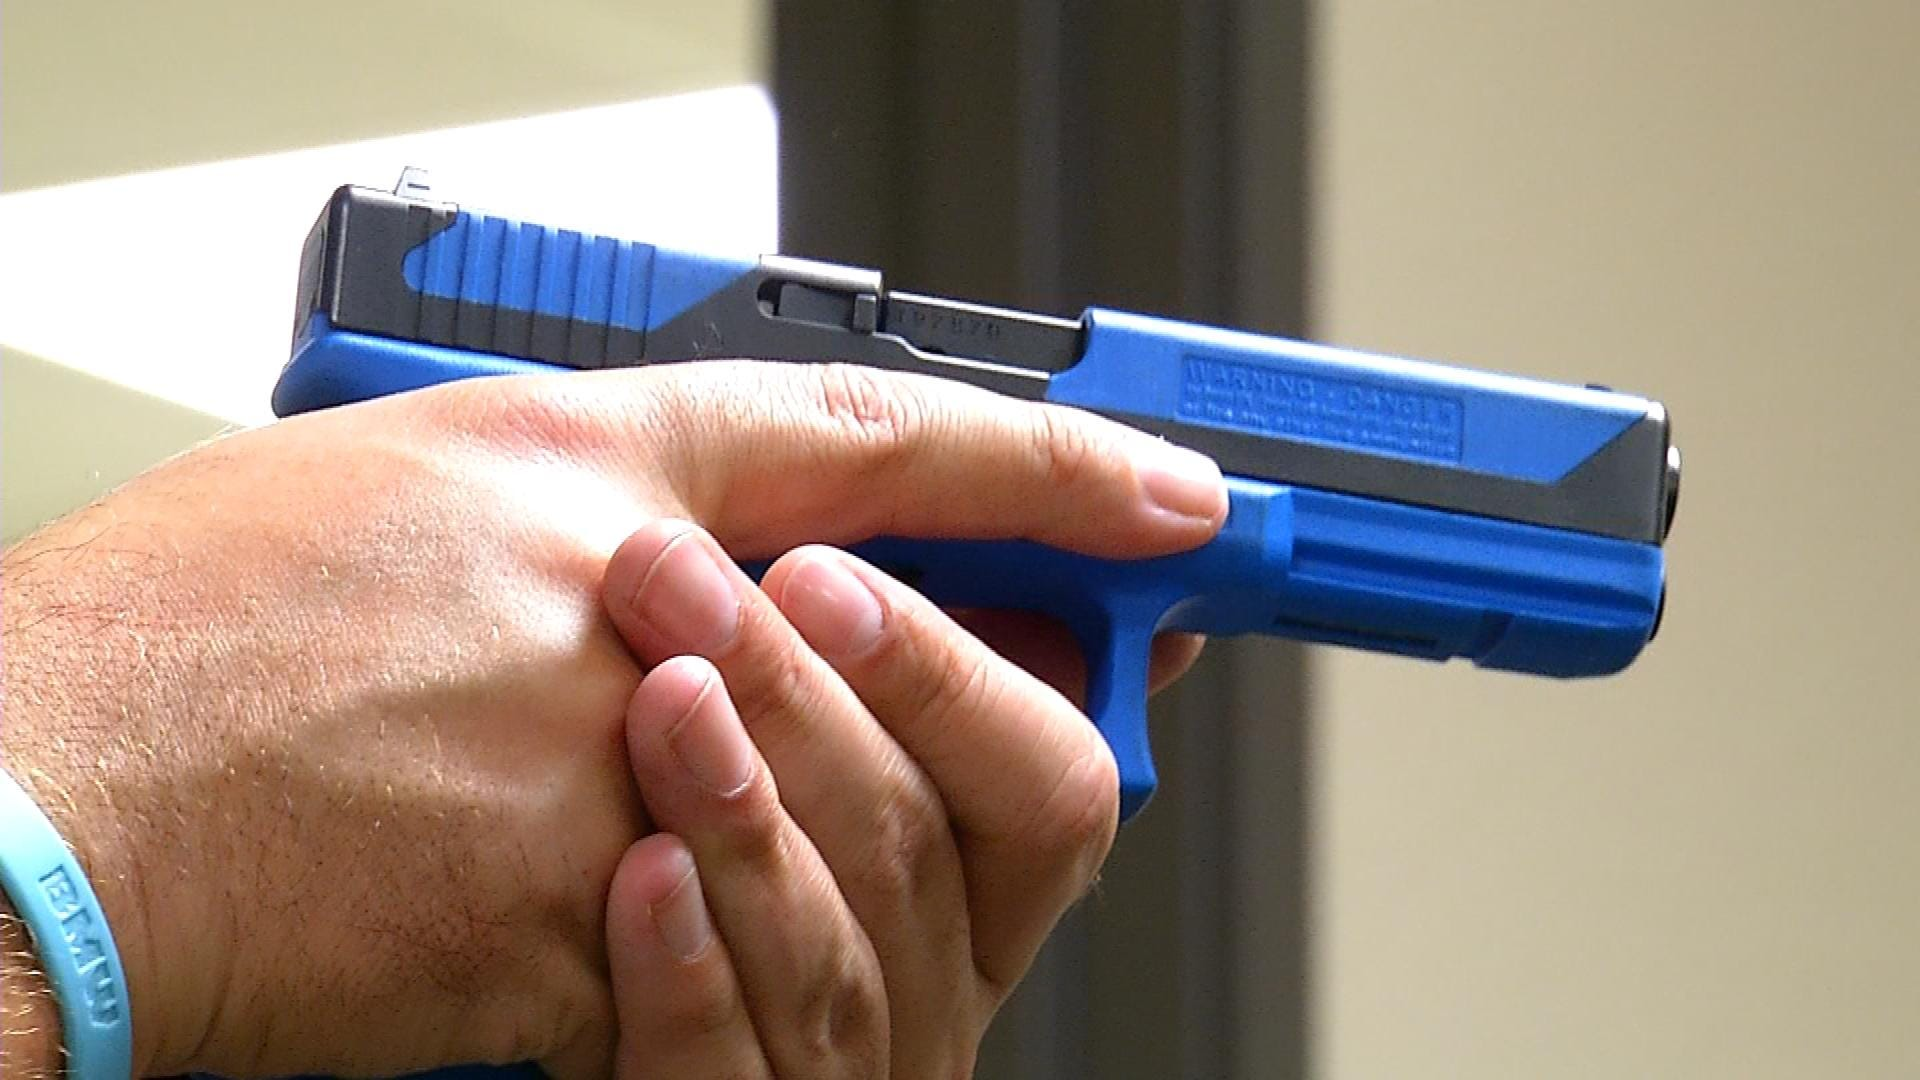 Canadian Co. Sheriff's Office Trains For Active Shooter Situation